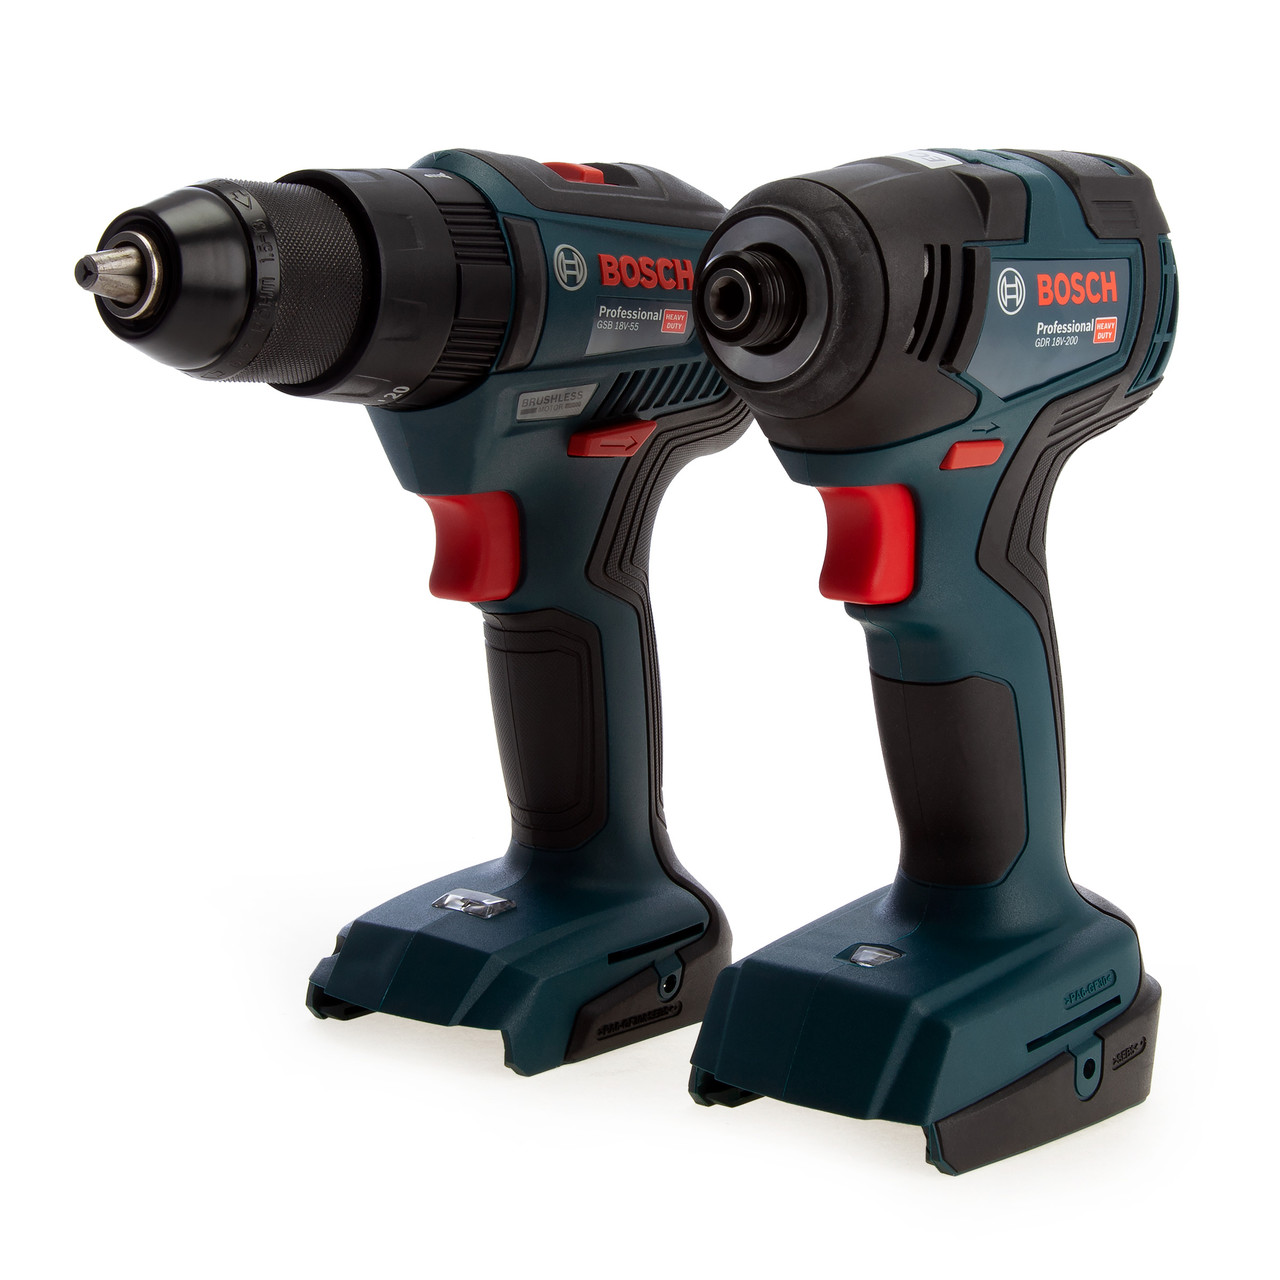 Bosch gdr 18v impact drivers for macbook air